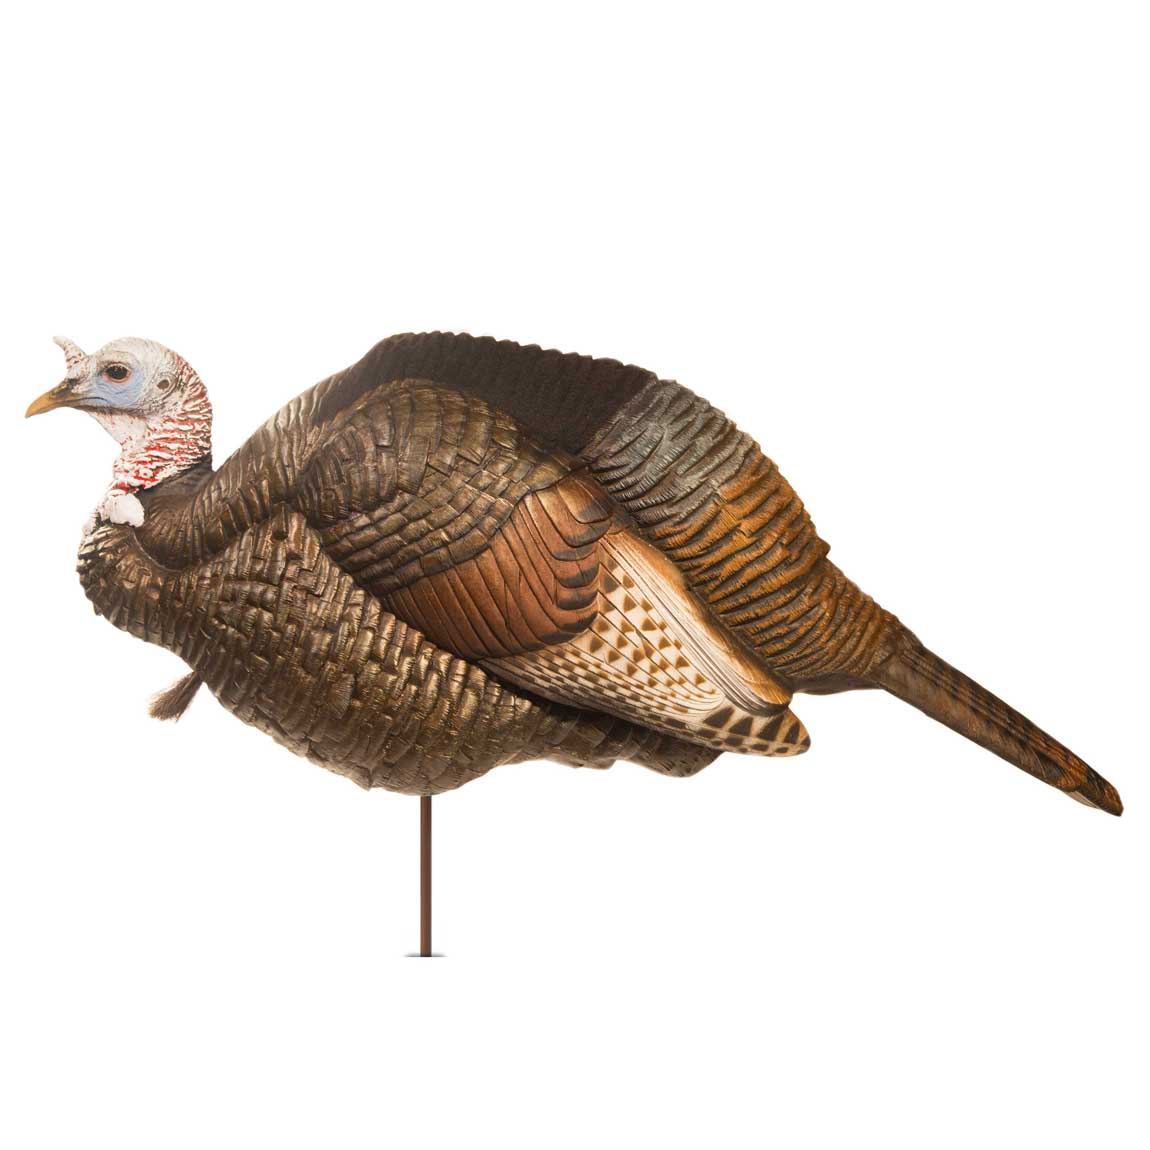 Dave Smith Decoys White Face 3/4 Strut Jake Decoy_1.jpg